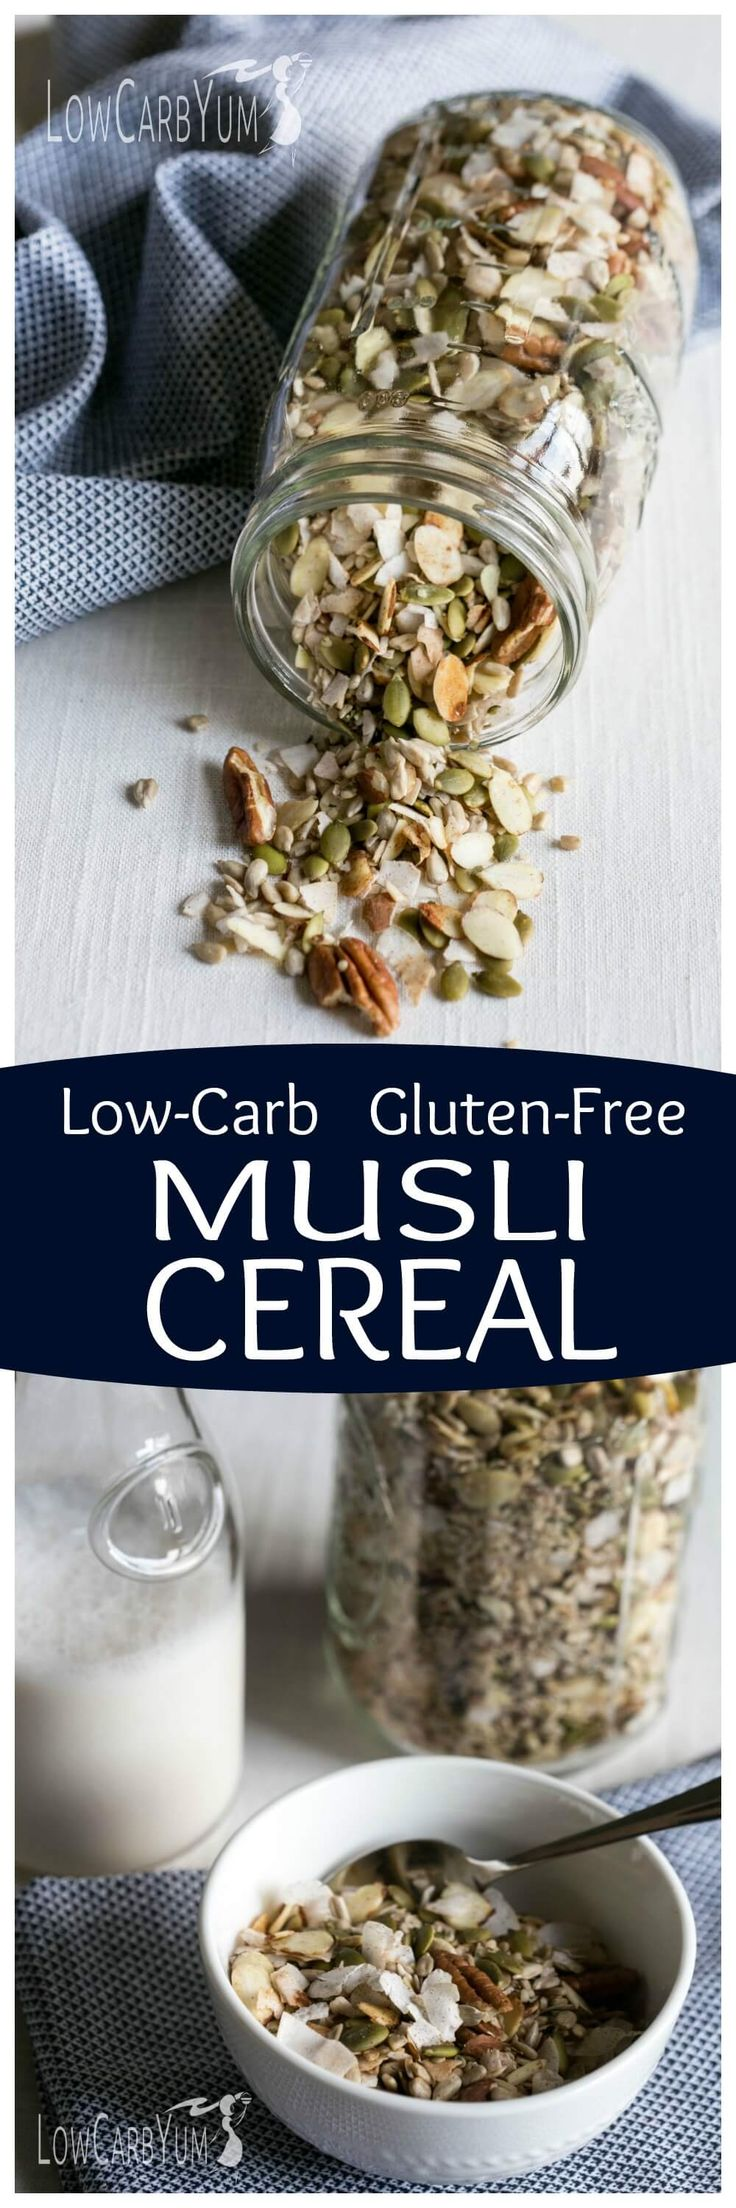 If you're following a low carb paleo diet, you'll love this low carb gluten free musli cereal. It's loaded with whole food ingredients without sugar added! | LowCarbYum.com